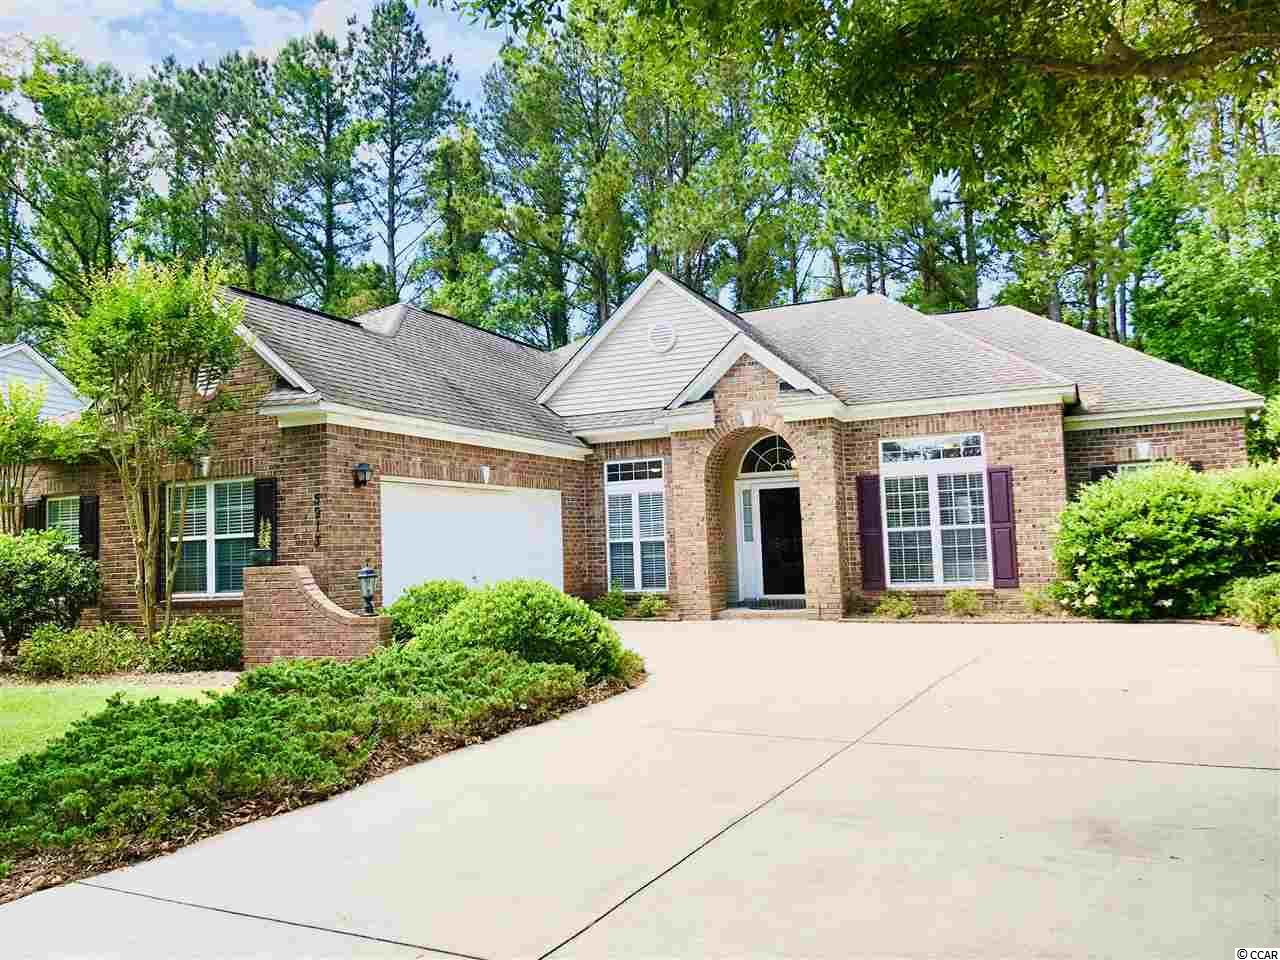 5913 Falcon Landing Circle, North Myrtle Beach, South Carolina